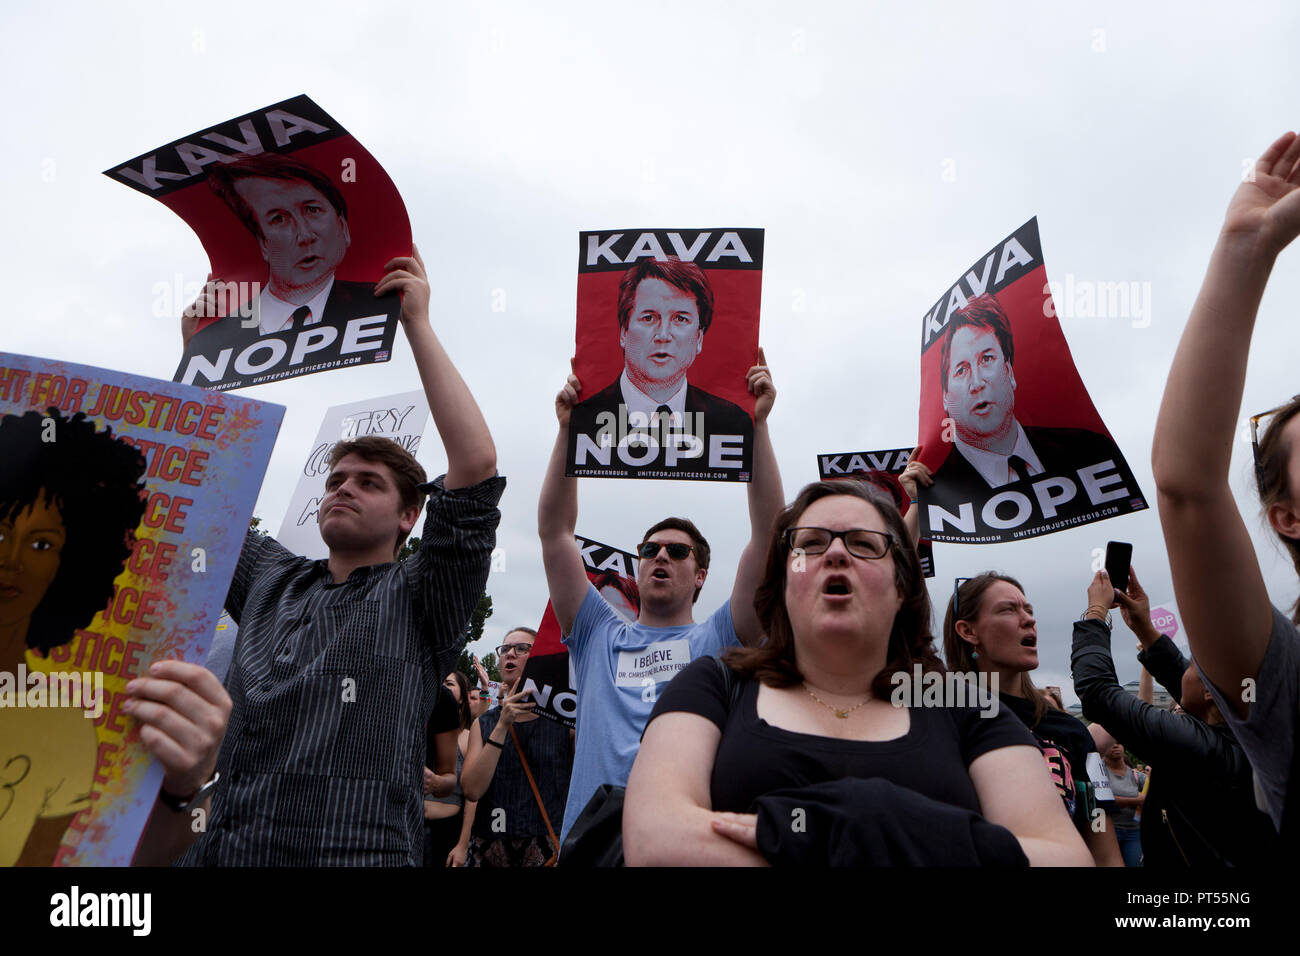 Washington, USA, 6th Oct, 2018: On the day of the final vote to confirm Brett Kavanaugh to the US Supreme Court, thousands of democrat activists protest in front of the Supreme Court building and the US Capitol.  Credit: B Christopher/Alamy Live News - Stock Image